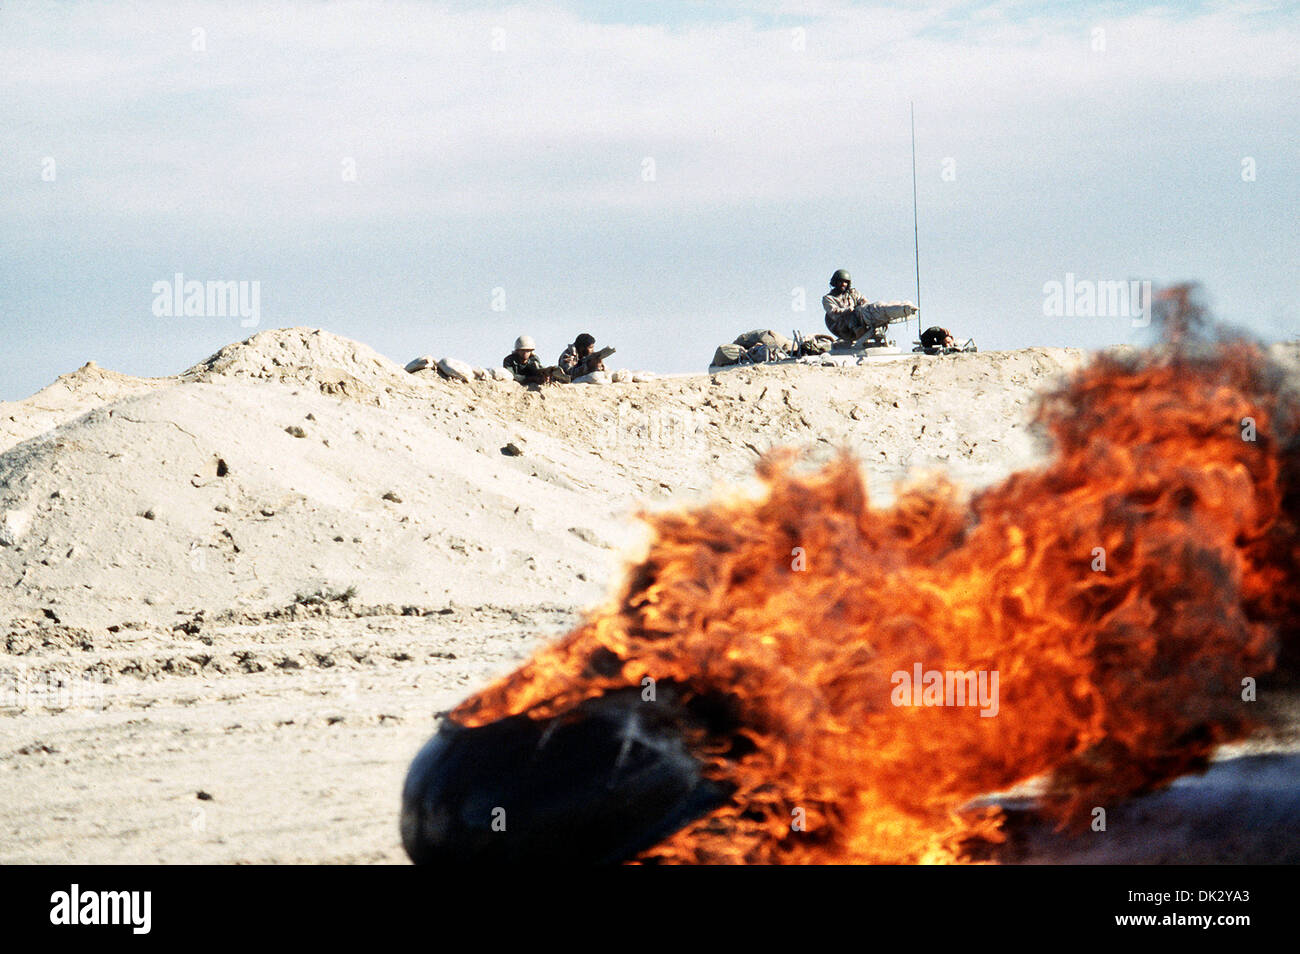 Armored units wait along a sand berm as destroyed vehicles burn during Operation Desert Storm February 28, 1991 in Kuwait. - Stock Image